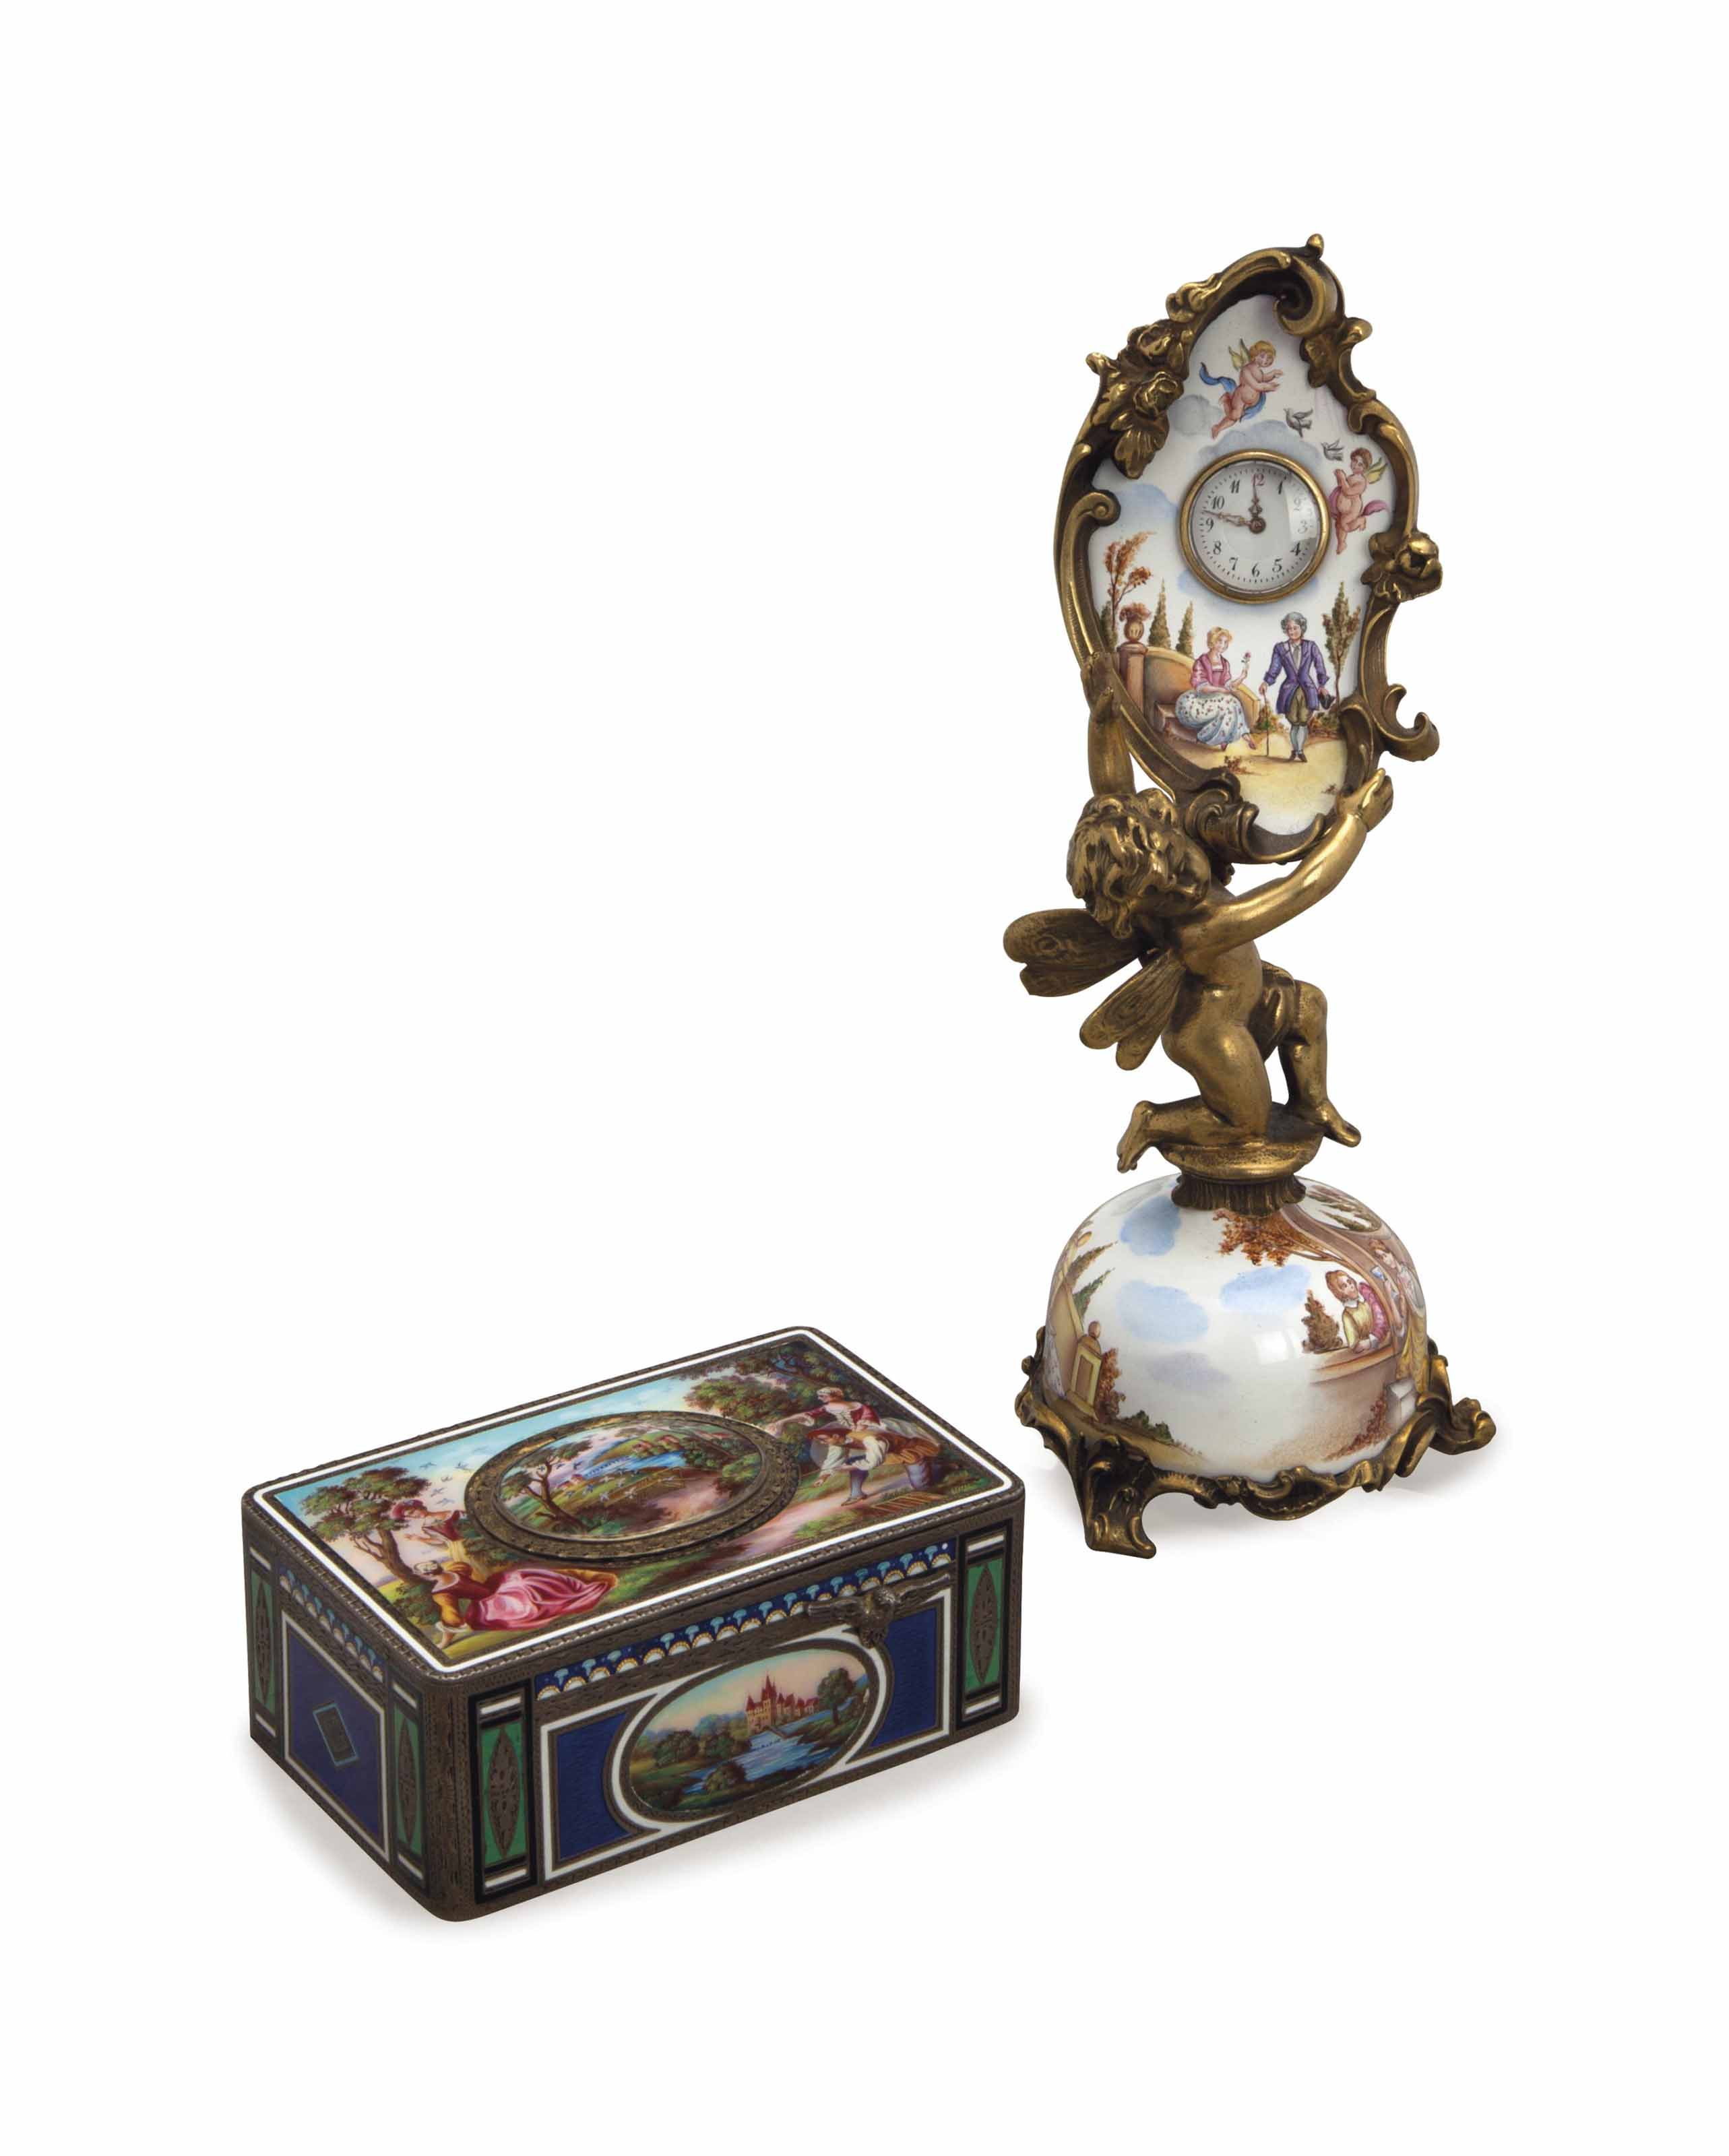 A SWISS GILT METAL AND ENAMEL FIGURAL TIMEPIECE, AND A ENAMELED SILVER SINGING BIRD BOX,